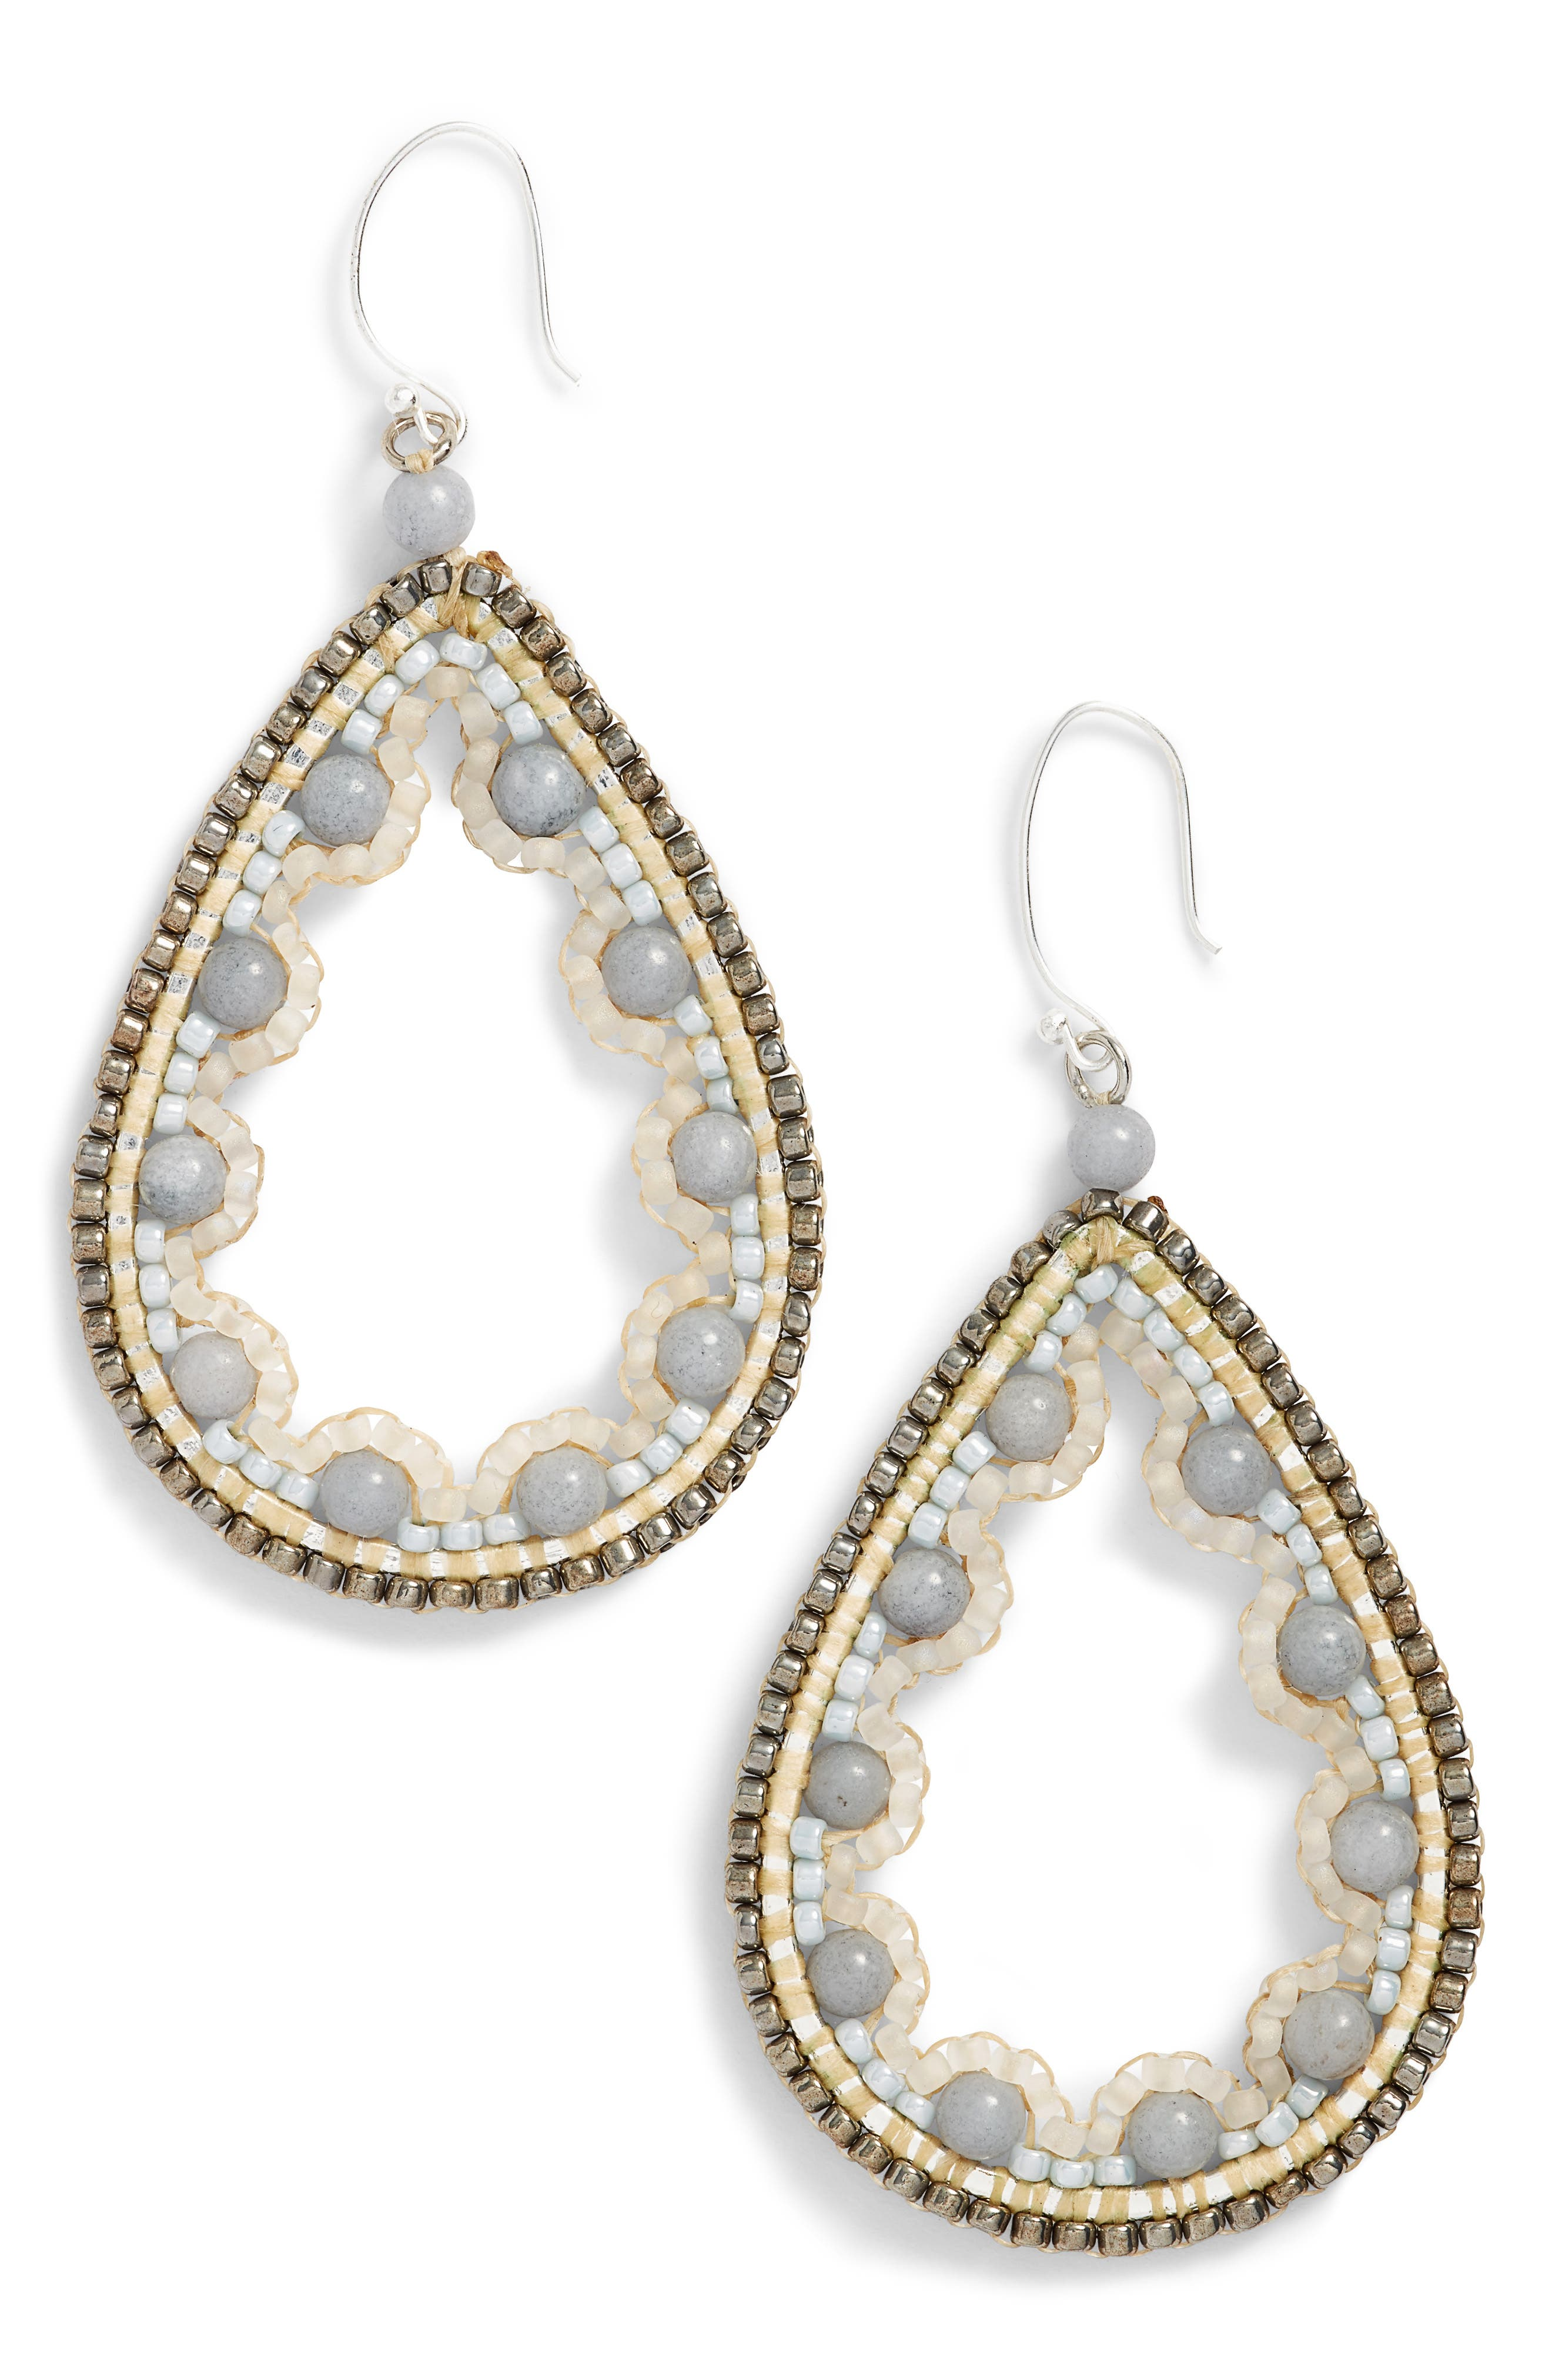 Nakamol Design Beaded Agate Teardrop Earrings